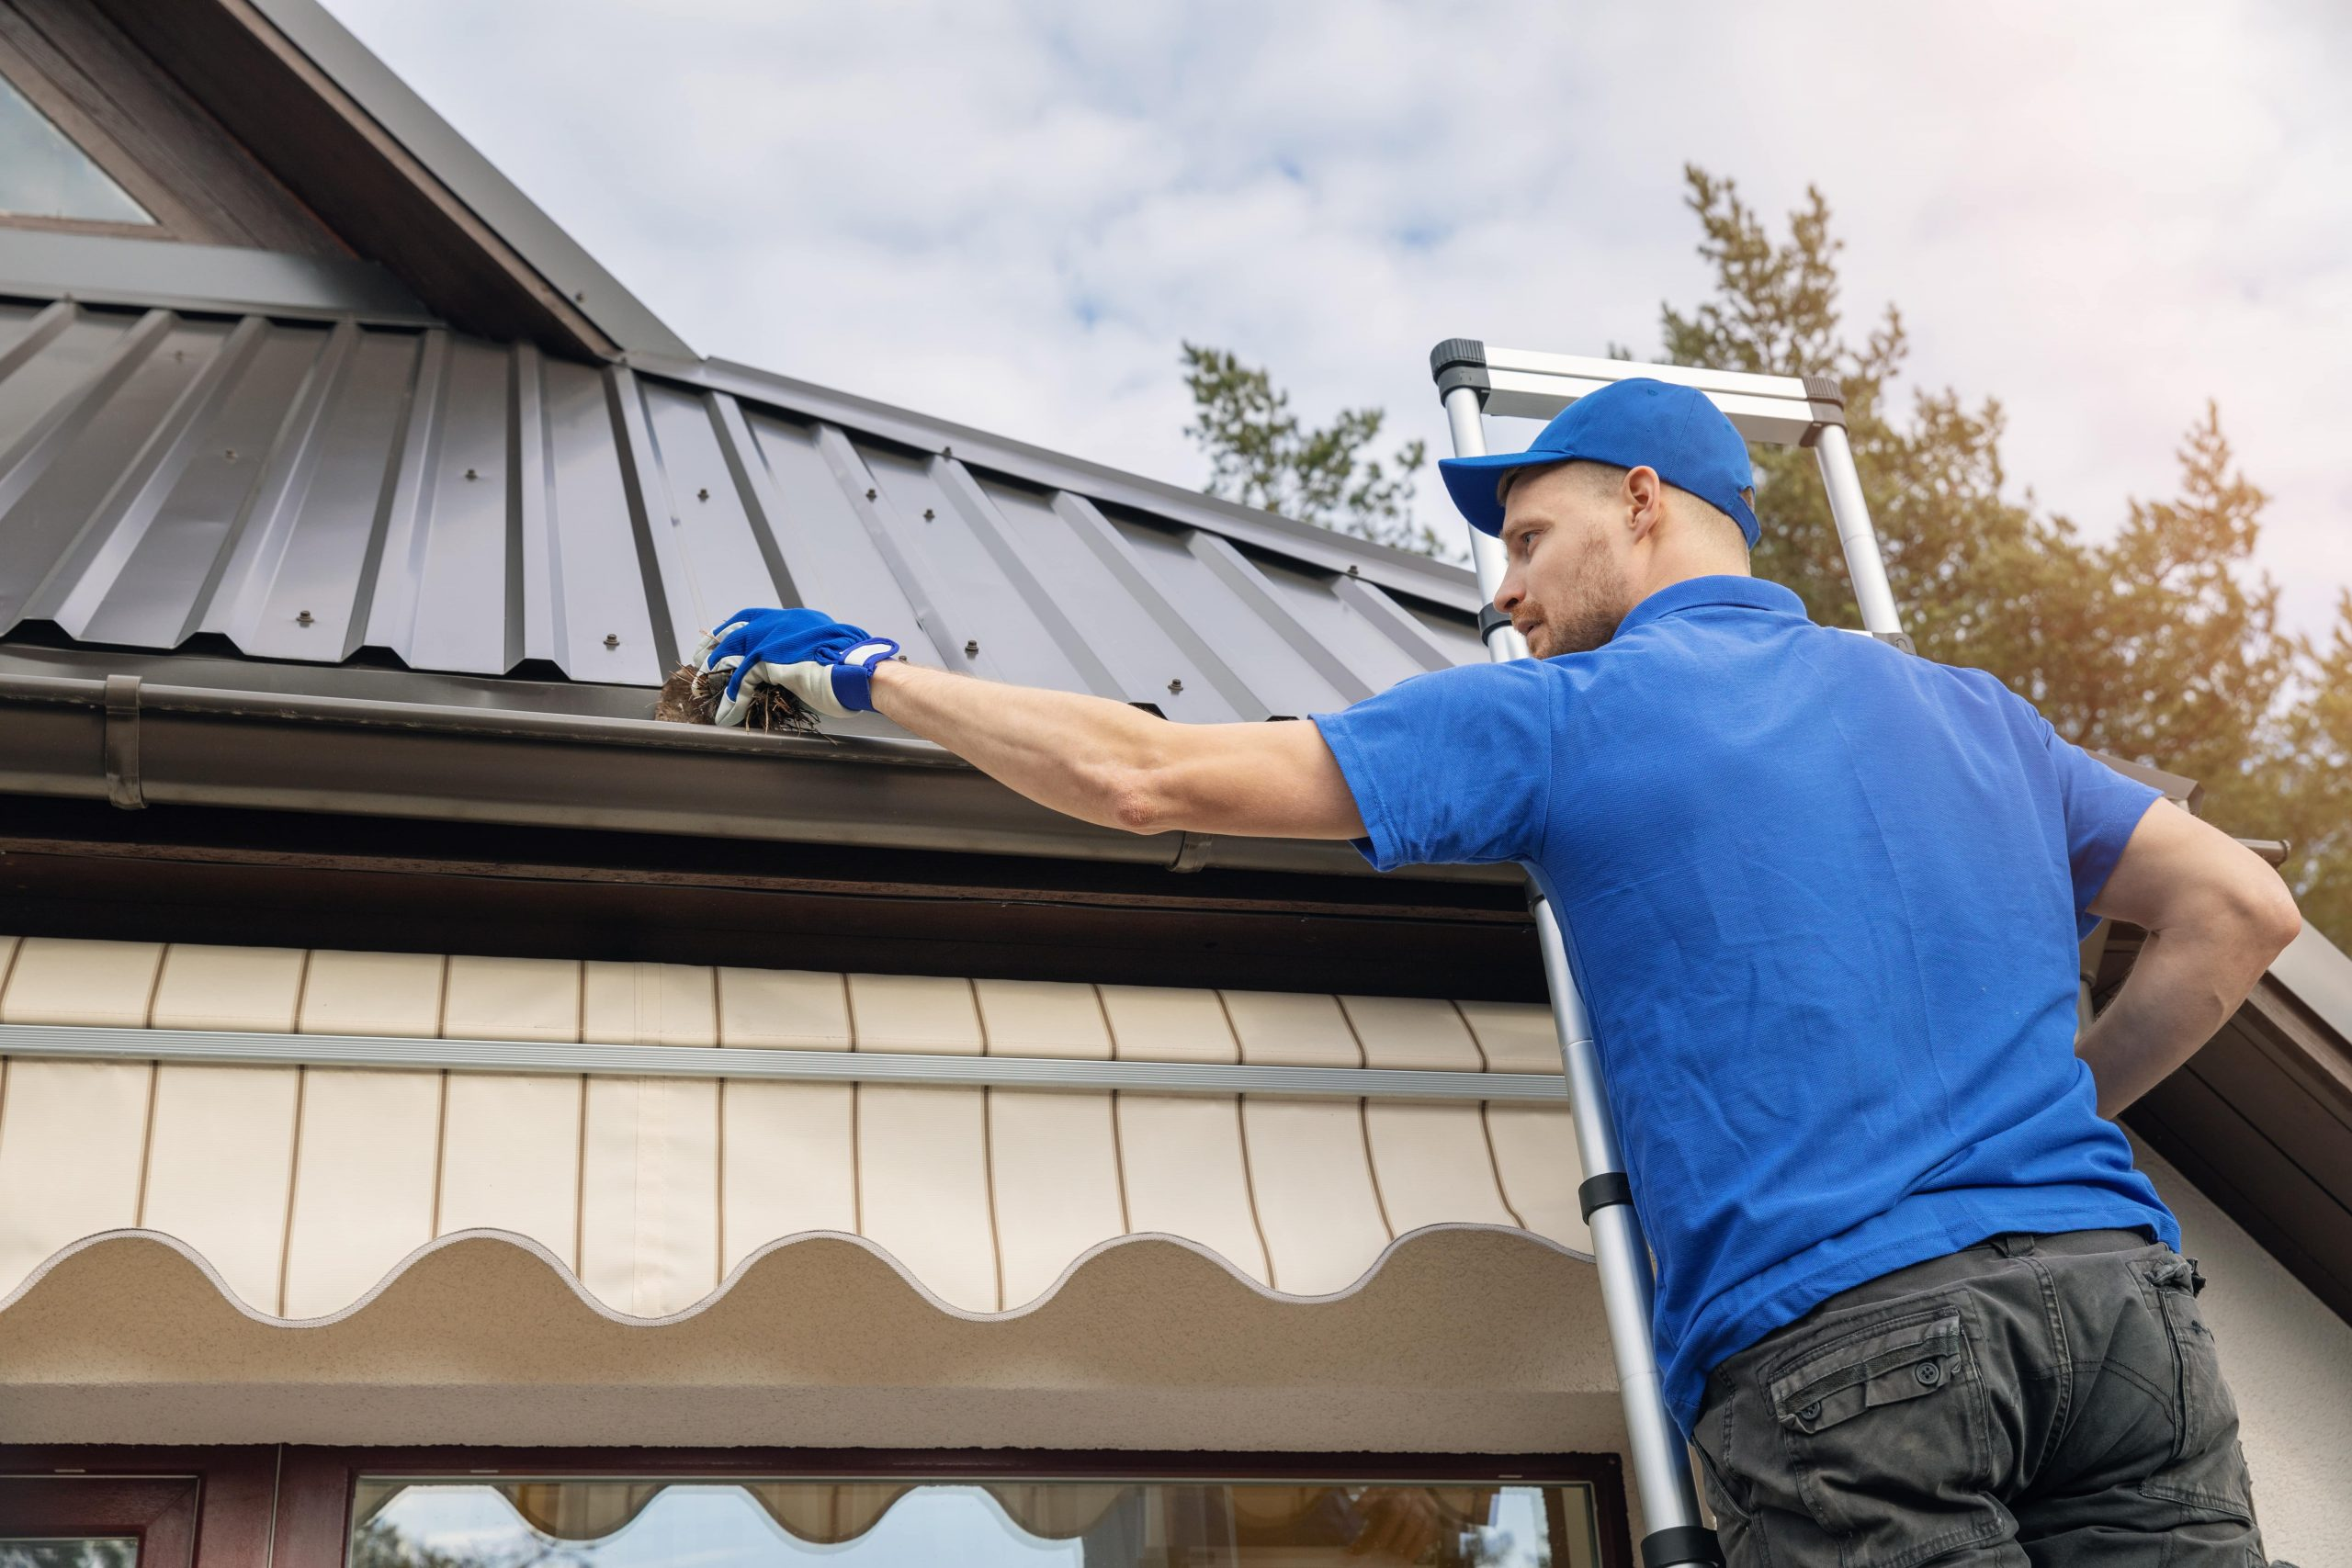 is window cleaning worth it?